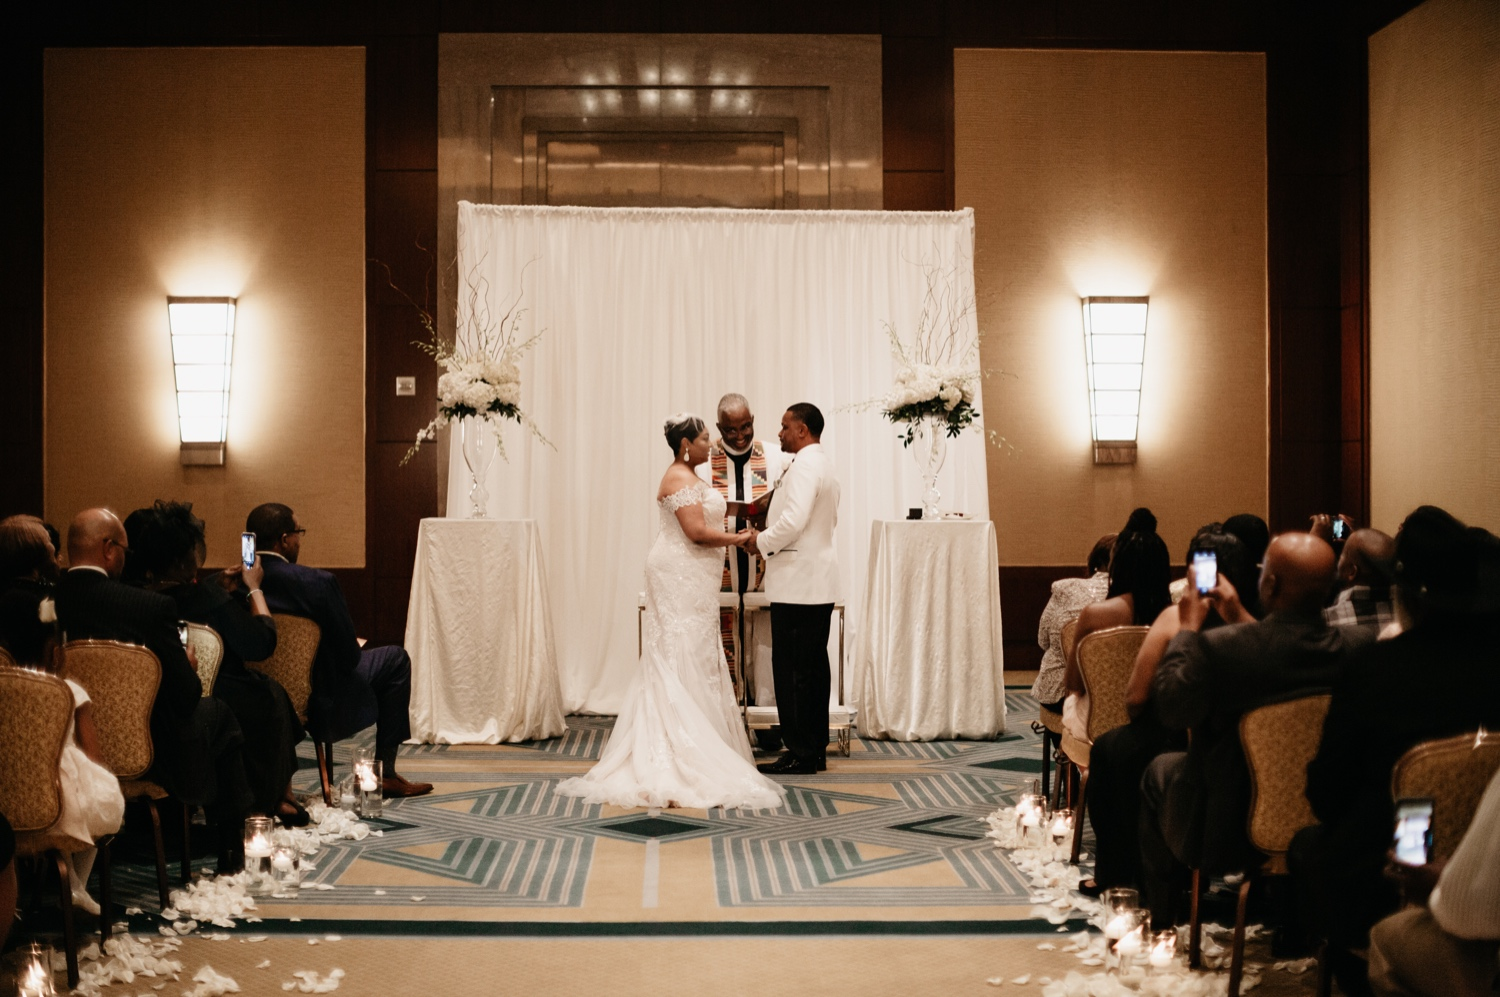 35_Ritz-carlton-wedding_charlotteNC_charlotteweddingphotographer.jpg